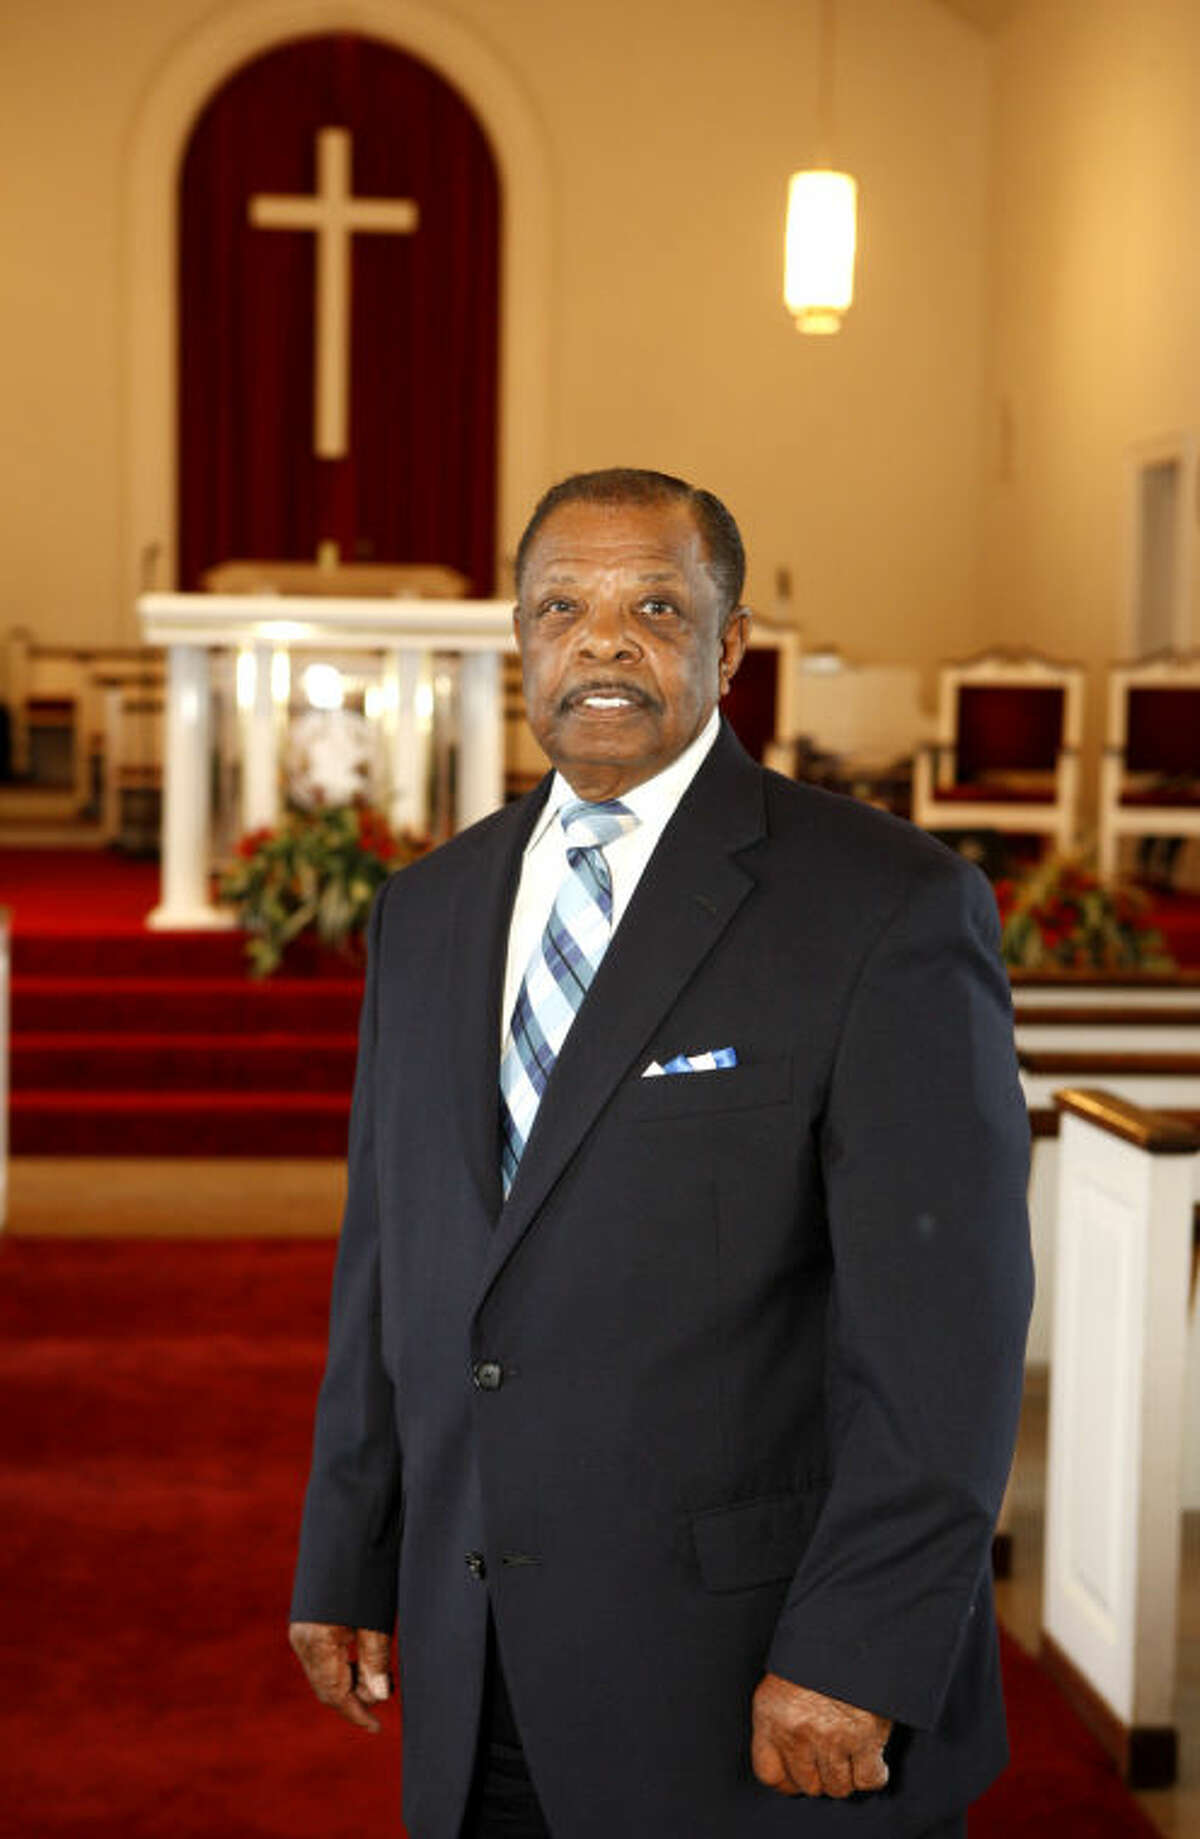 Rev. William C. Kenan poses for a picture at Faith Temple Church of God in Christ on Tuesday. James Durbin/Reporter-Telegram